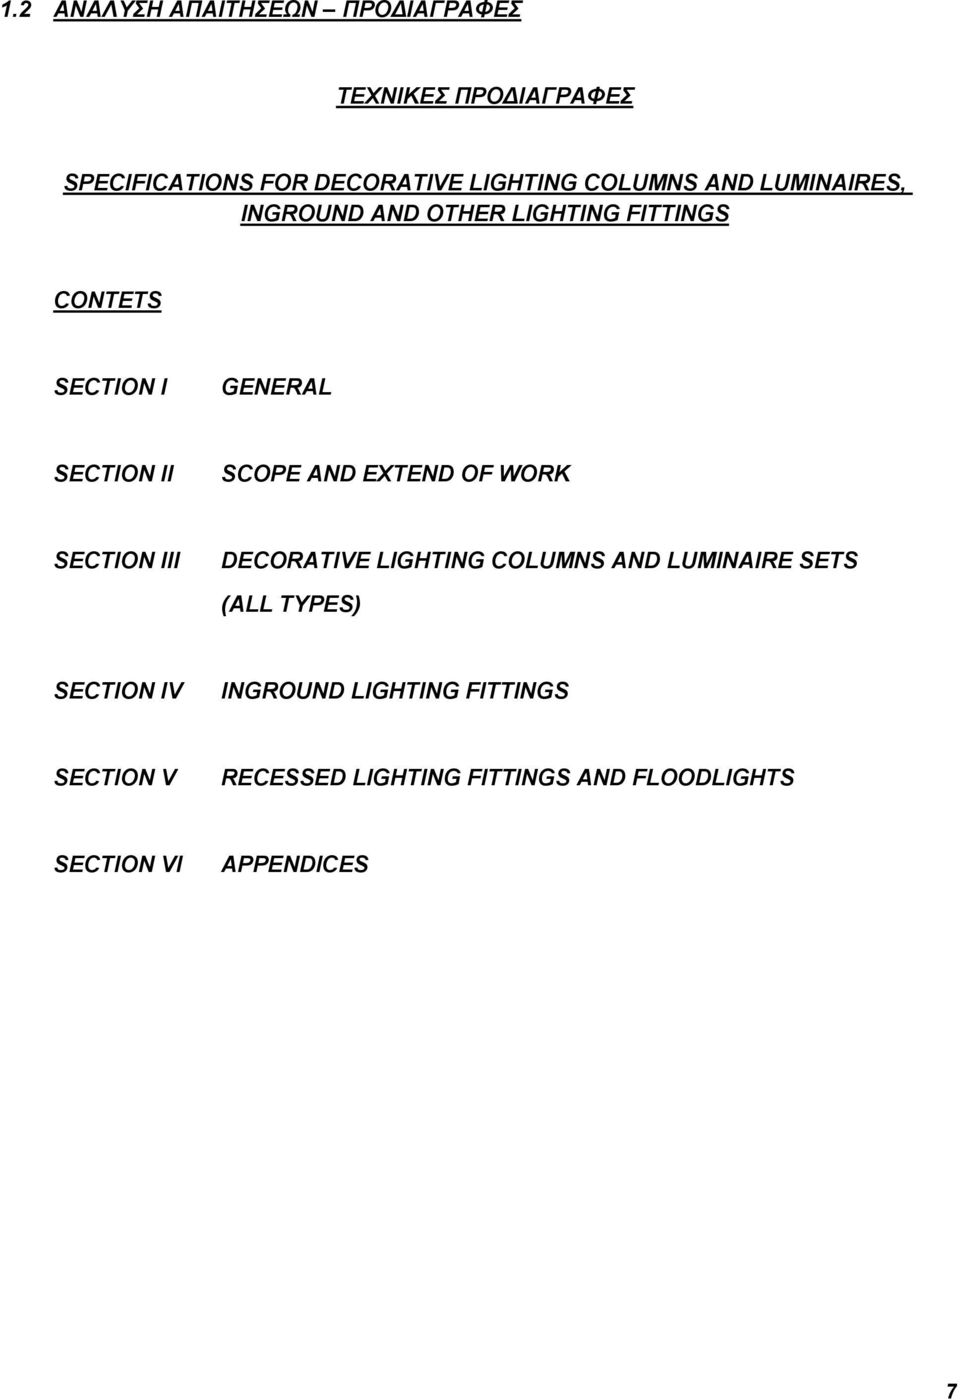 SCOPE AND EXTEND OF WORK SECTION III DECORATIVE LIGHTING COLUMNS AND LUMINAIRE SETS (ALL TYPES)